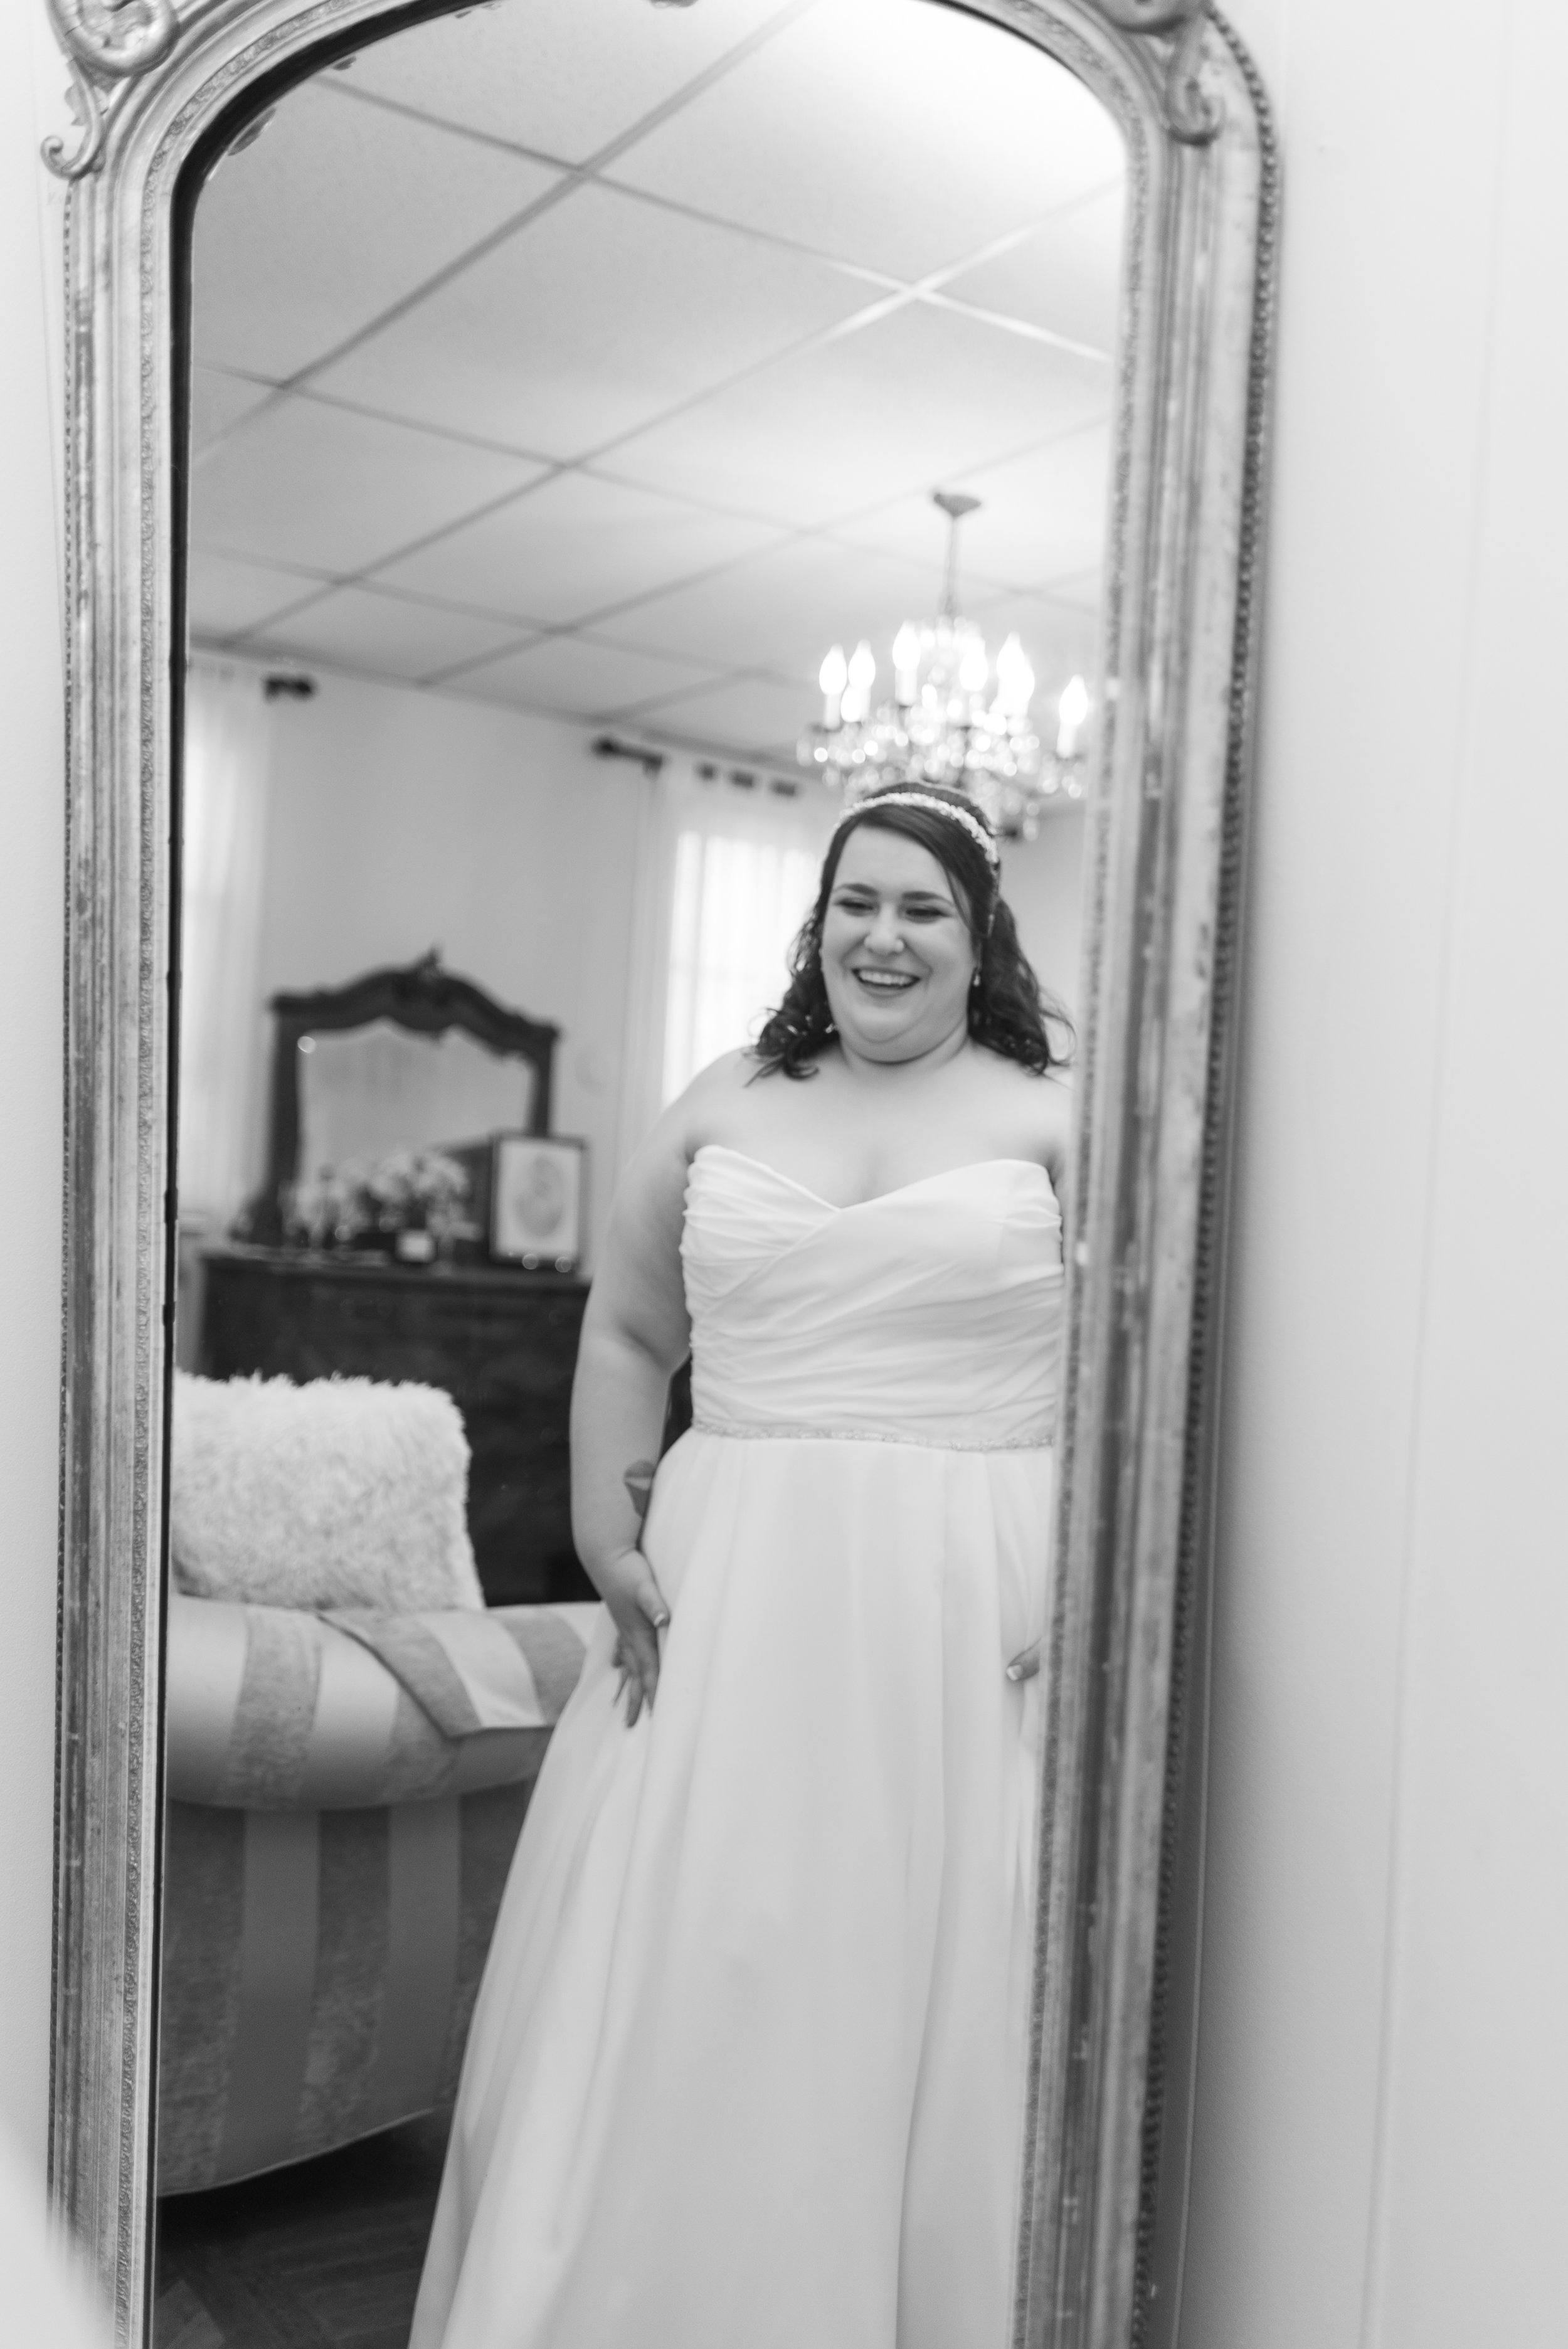 I will never forget the joy in Christina's face when she turned around and saw herself in the mirror!!! You are so beautiful girl!